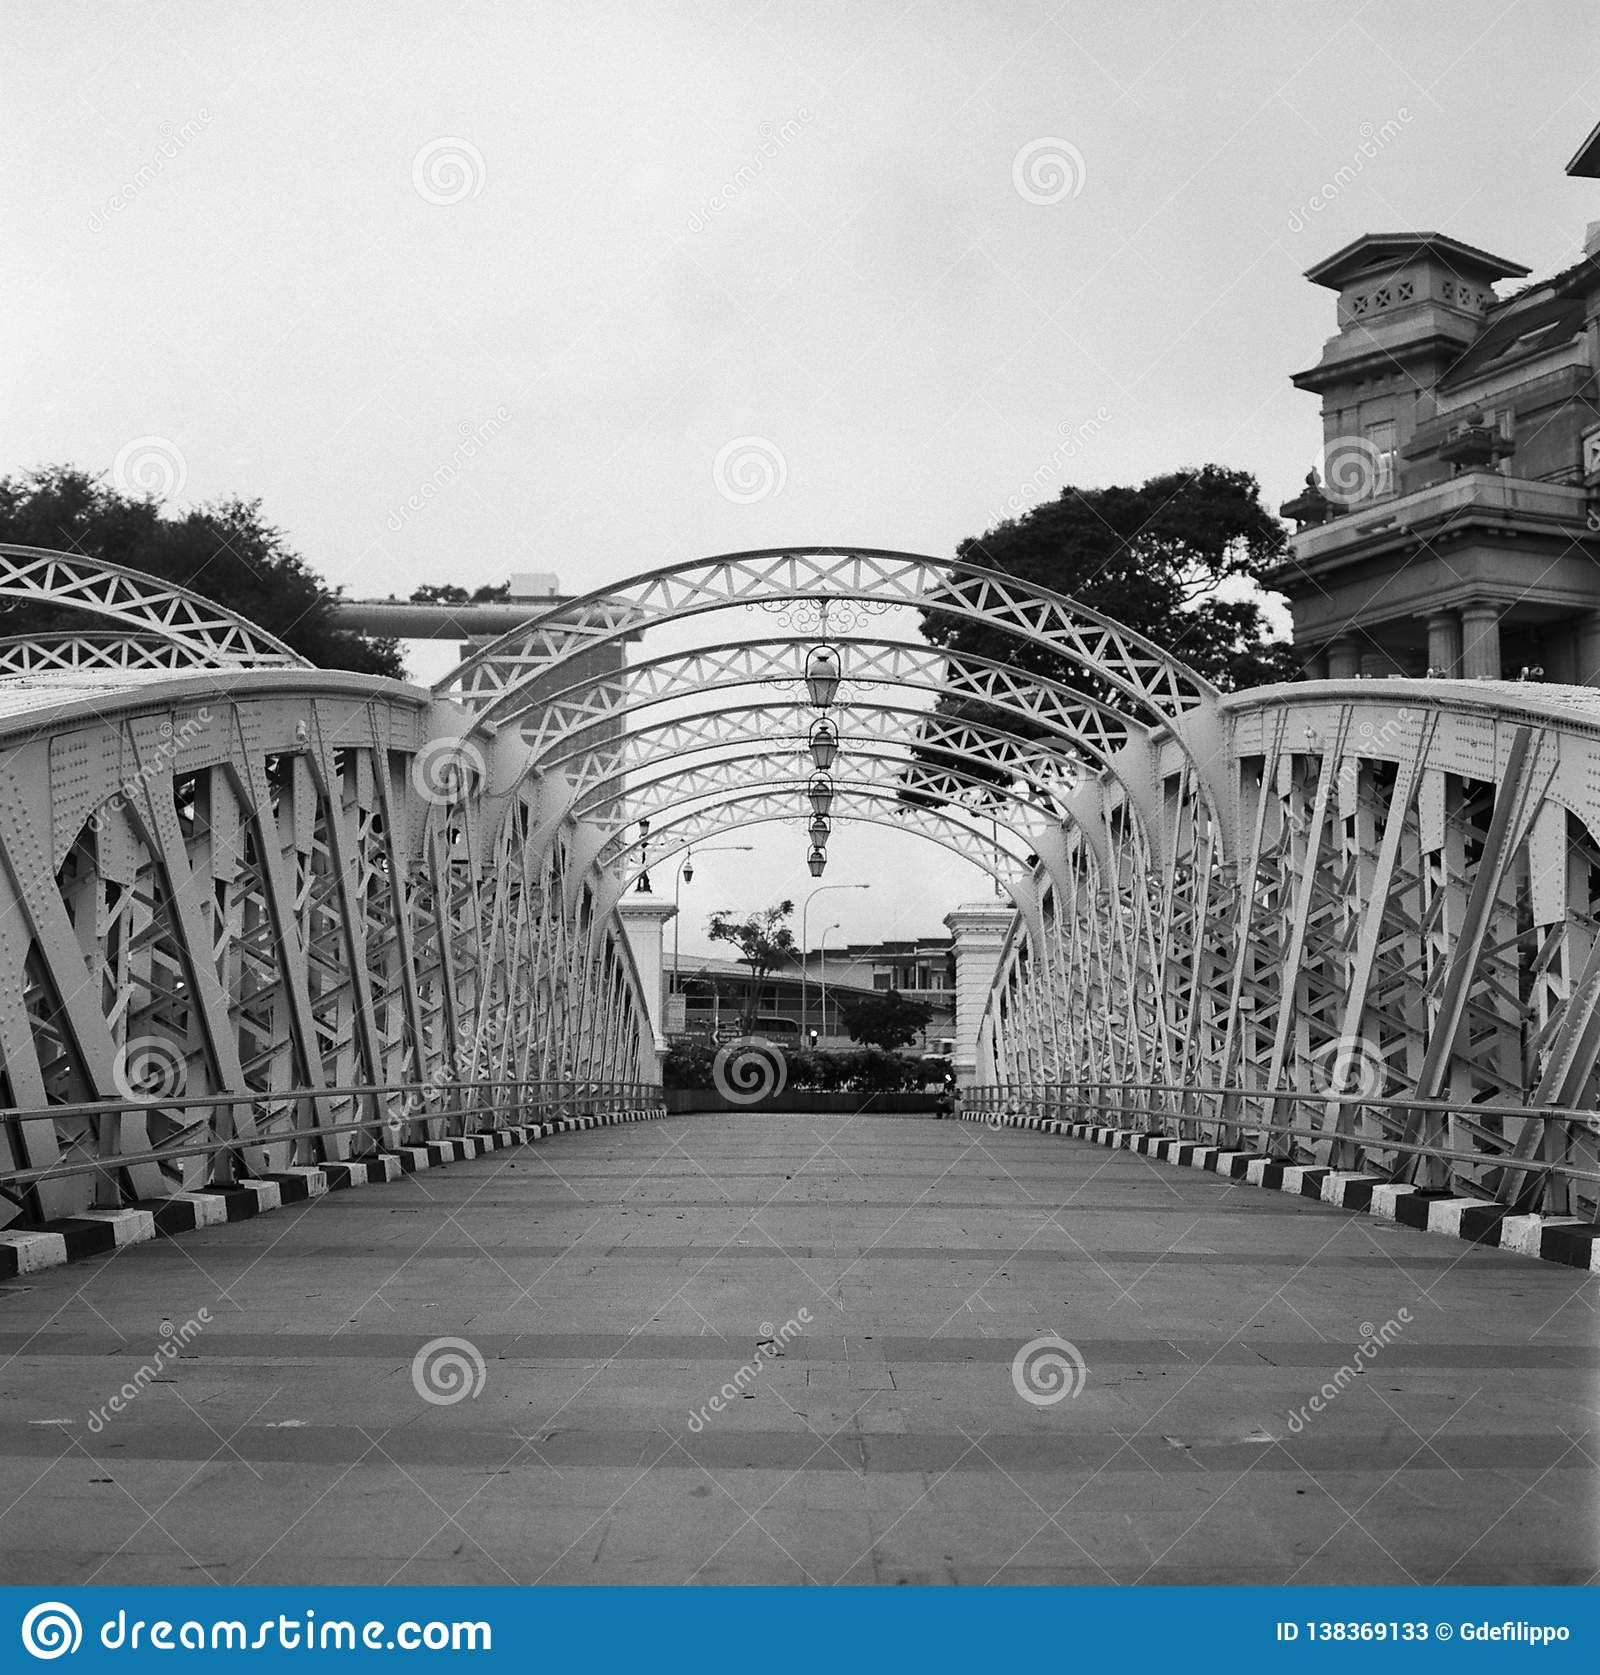 Old metal colonial bridge on the singapore river in black and white analogue film photography